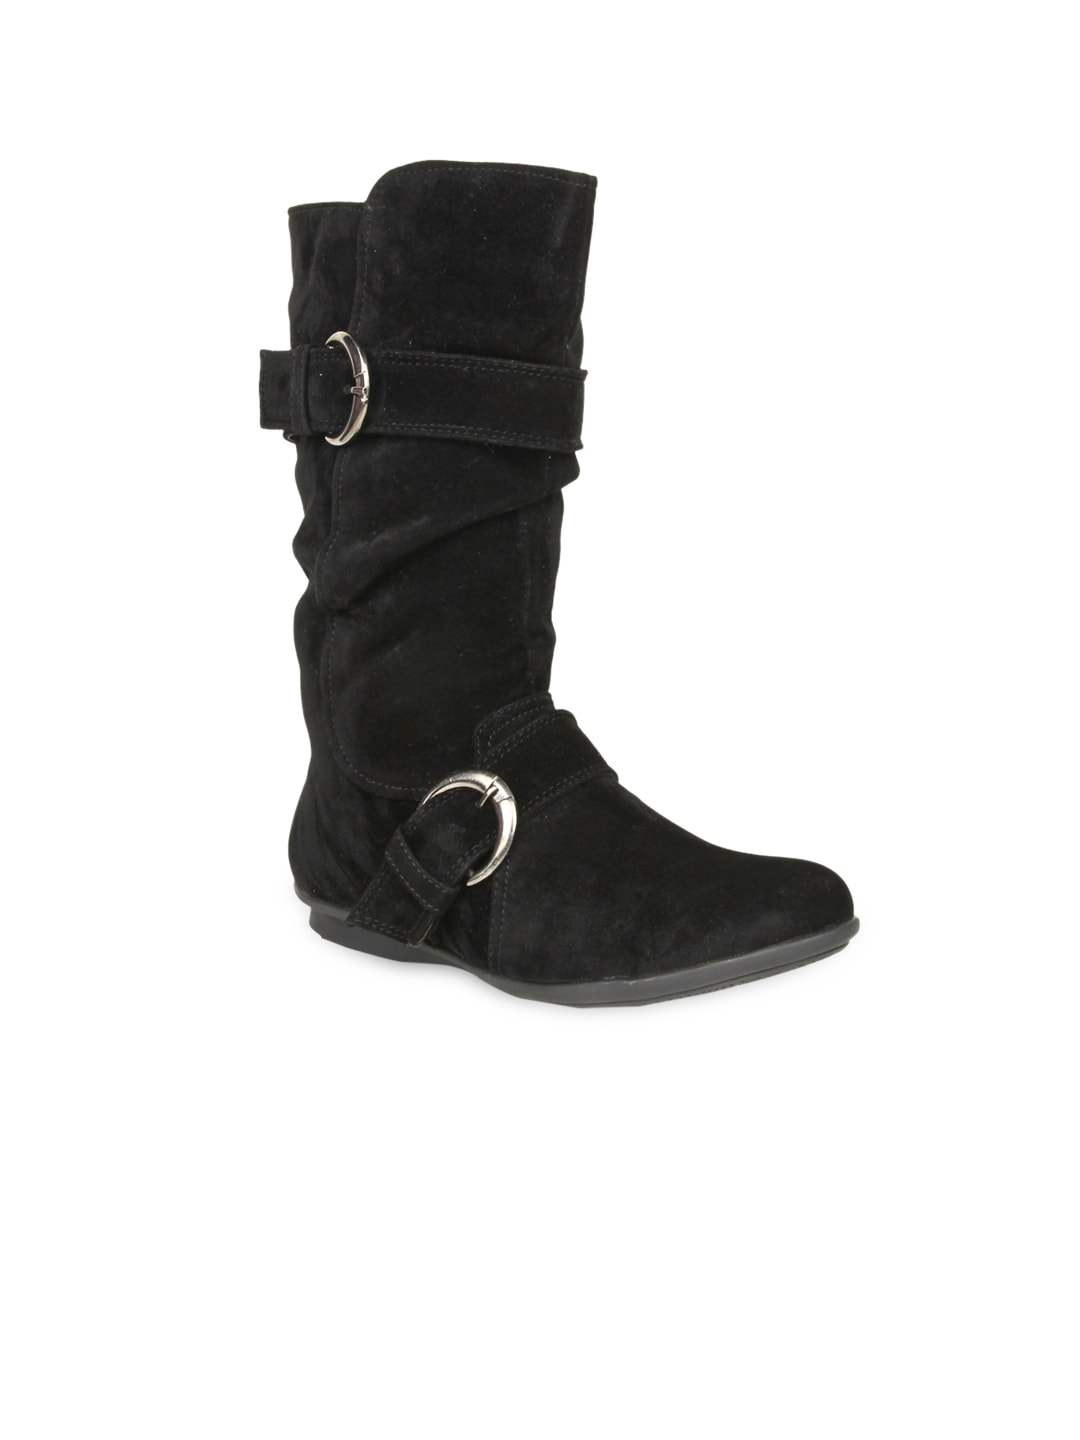 Bruno Manetti Women Black Suede Flat Boots